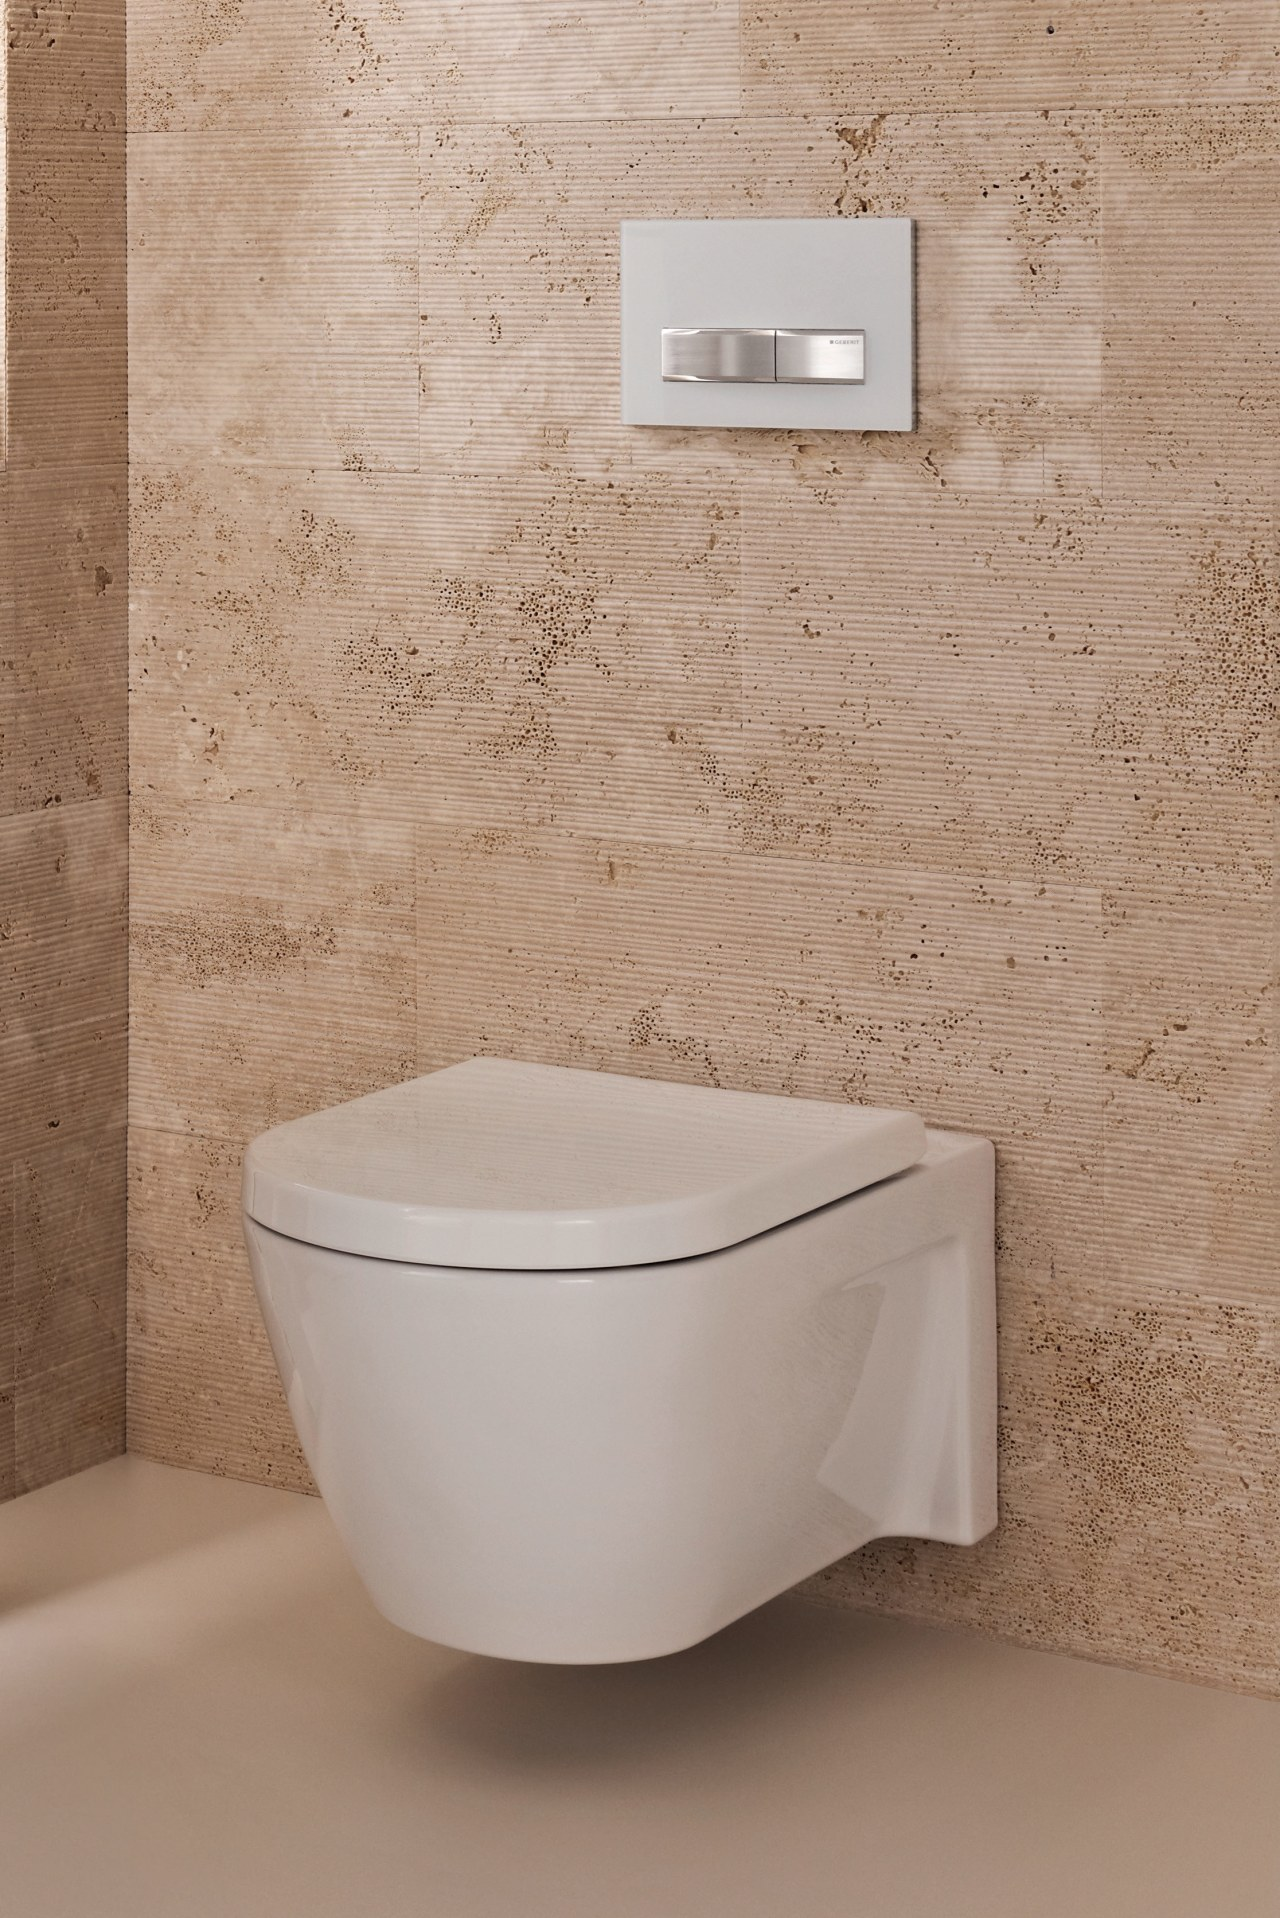 With a concealed inwall cistern, all you see bathroom, bathroom accessory, bathroom sink, bidet, ceramic, floor, plumbing fixture, product, product design, tap, tile, toilet, toilet seat, wall, gray, brown